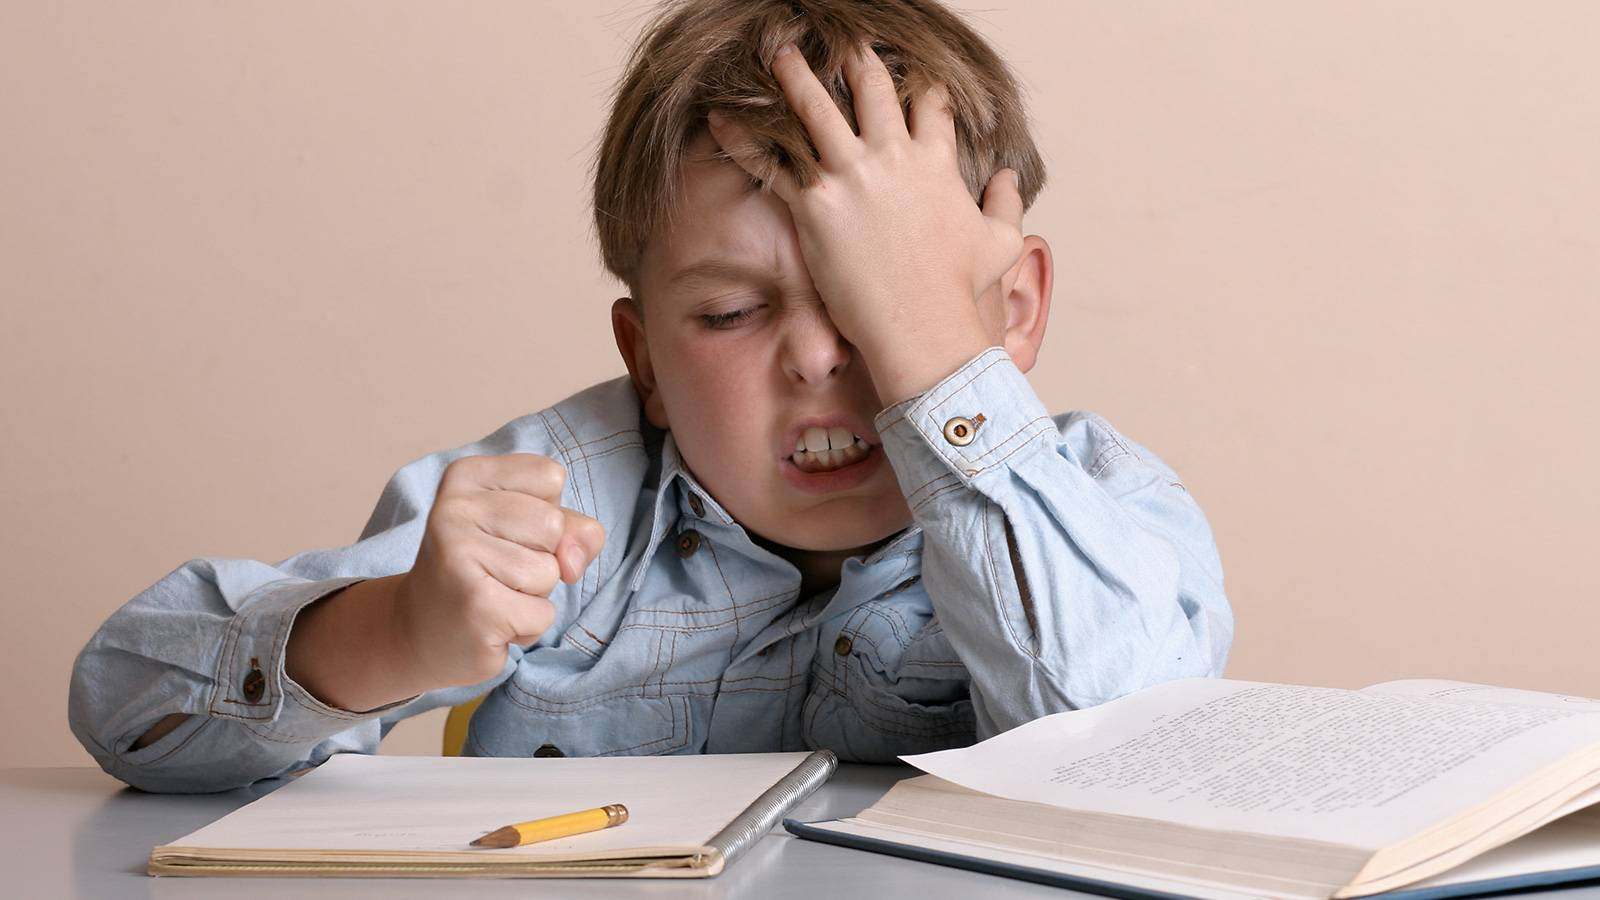 Kids-6-signs-your-school-going-child-isn't-getting-enough-sleep-2